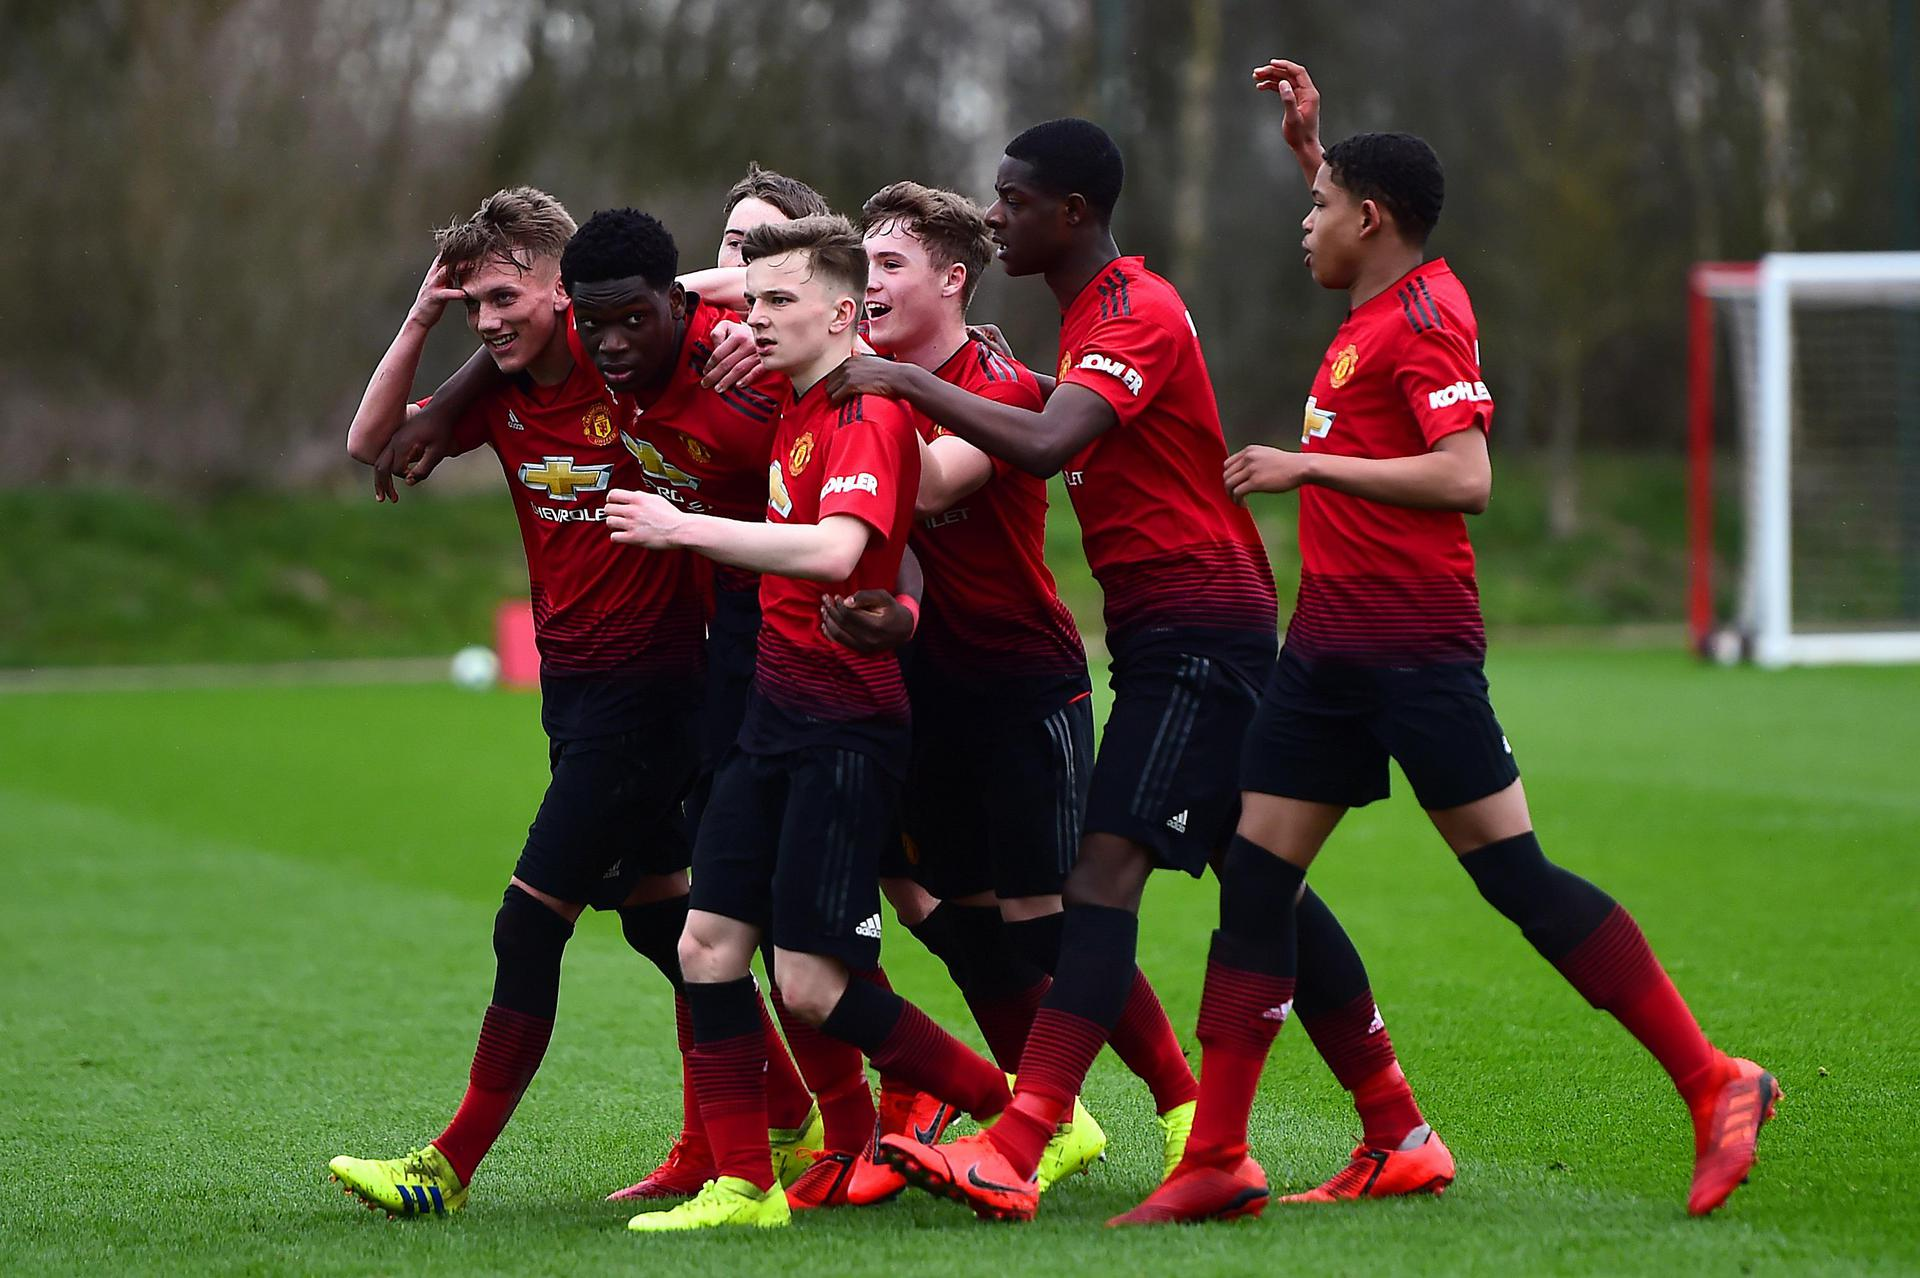 United celebrate our second goal.